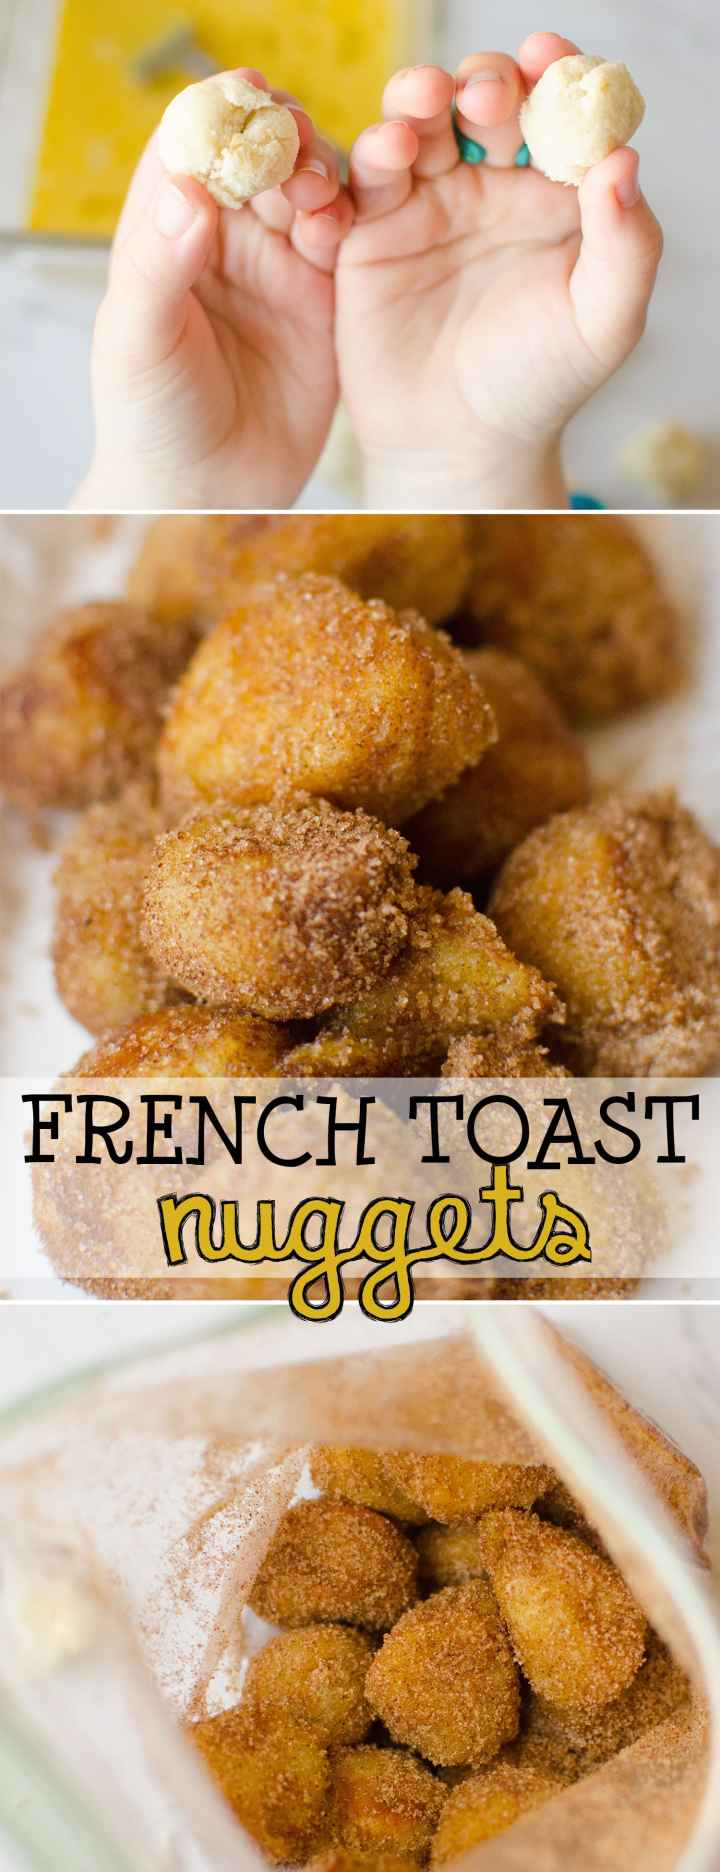 French Toast Nuggets are small, bite-sized pieces of french toast. They're dipped in egg and fried crispy-brown, and covered with cinnamon and sugar. This is such a fun alternative to regular old French toast! Plus, no forks required! |Cooking with Karli| #frenchtoast #kidcook #nuggets #breakfast #recipe